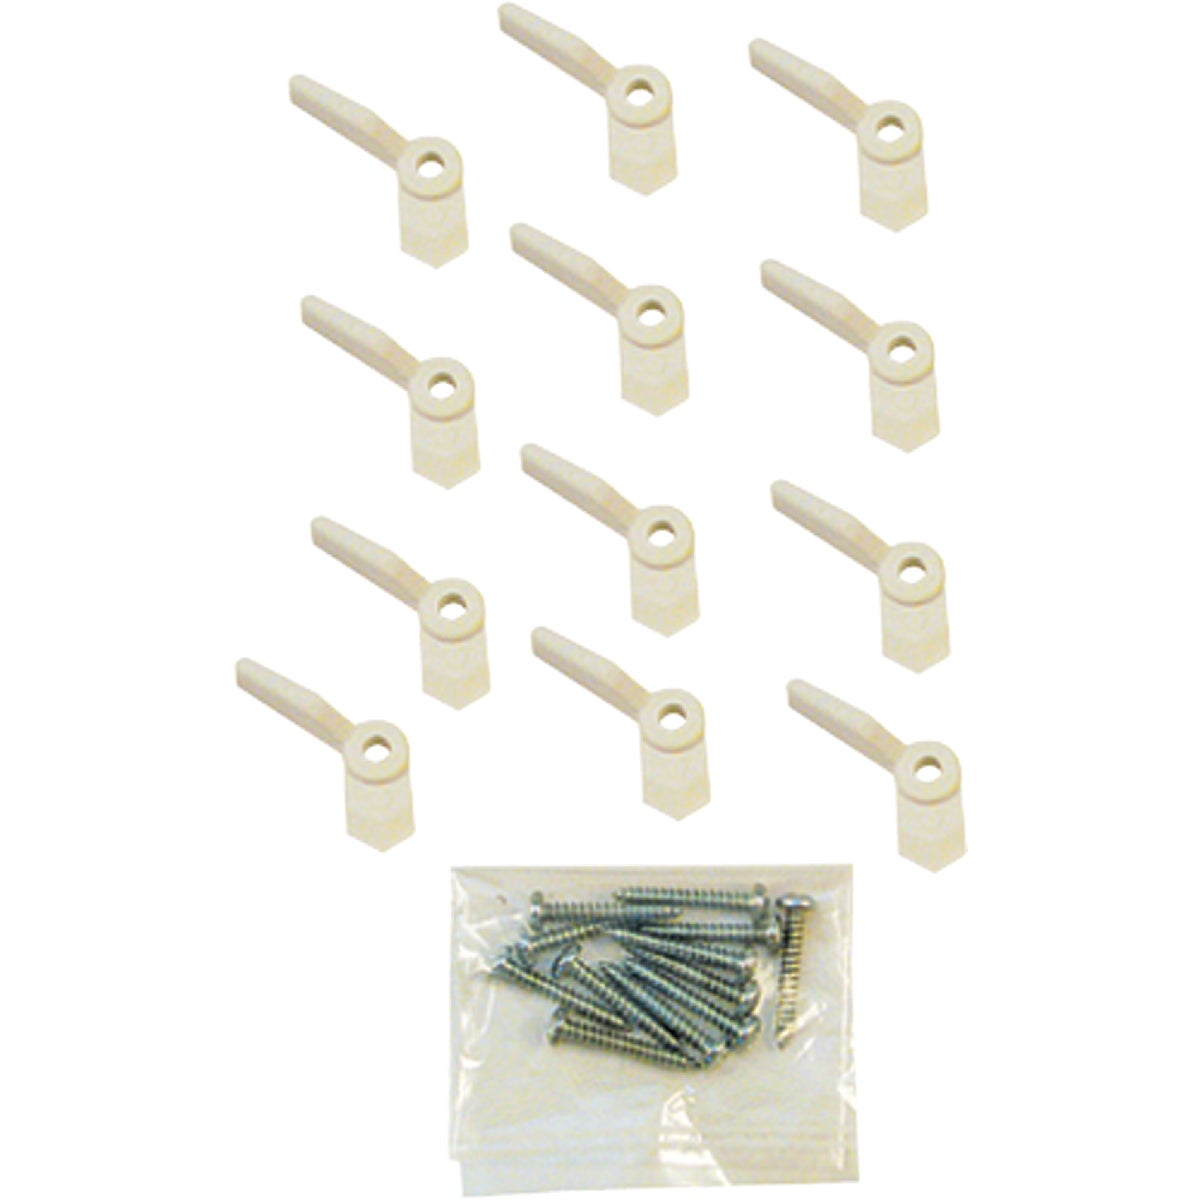 12PK WHT NYL TURN BUTTON